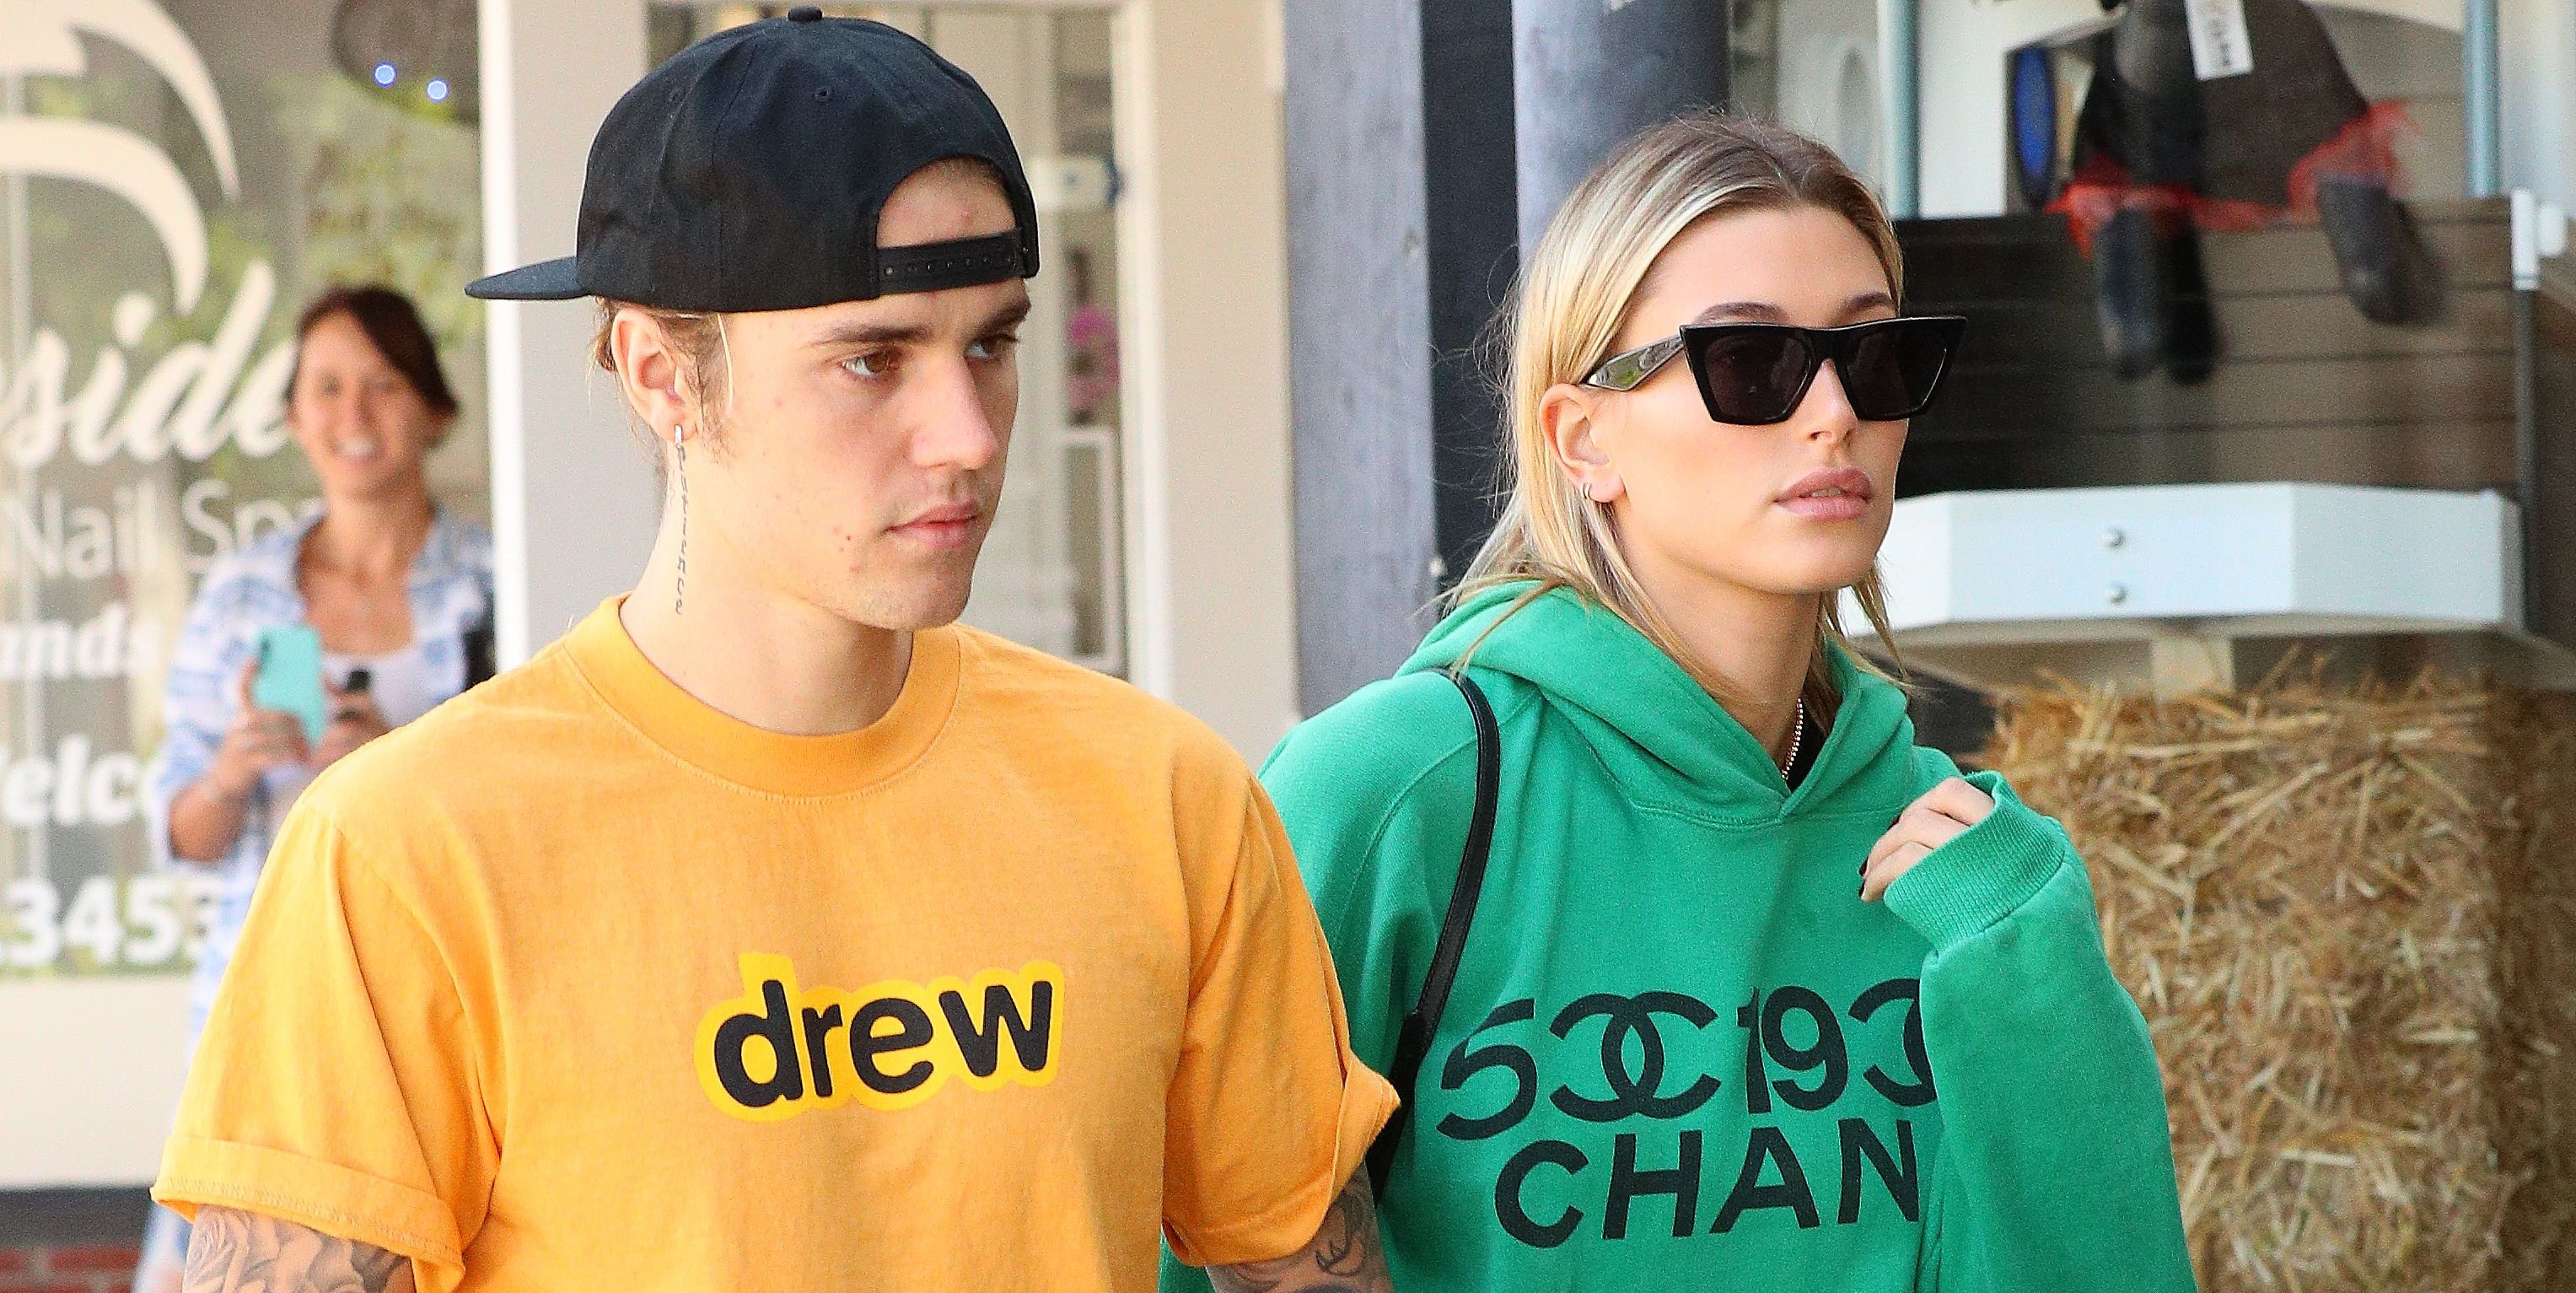 Justin Bieber and Hailey Baldwin Were the World's Comfiest Rich People on Their Date